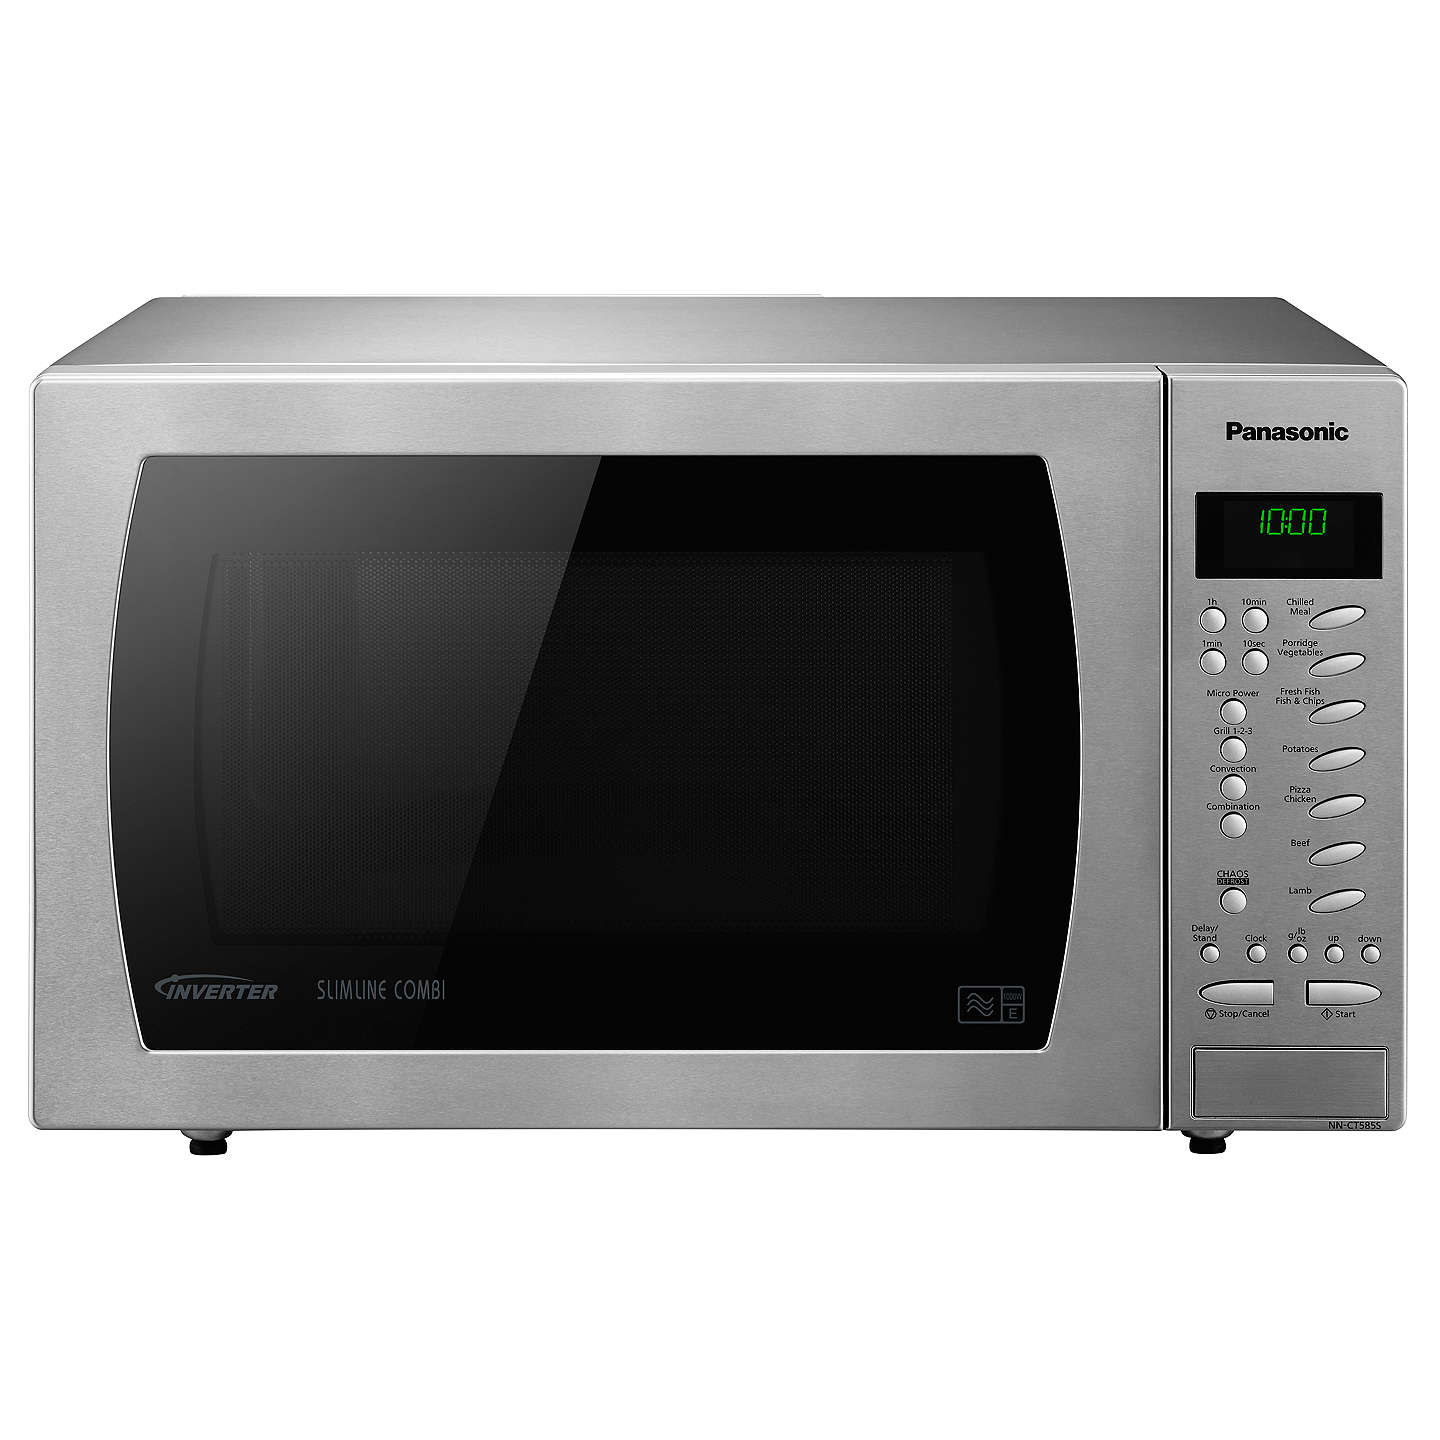 Panasonic Nn Ct585sbpq Freestanding Combination Microwave Oven Stainless Steel Online At Johnlewis